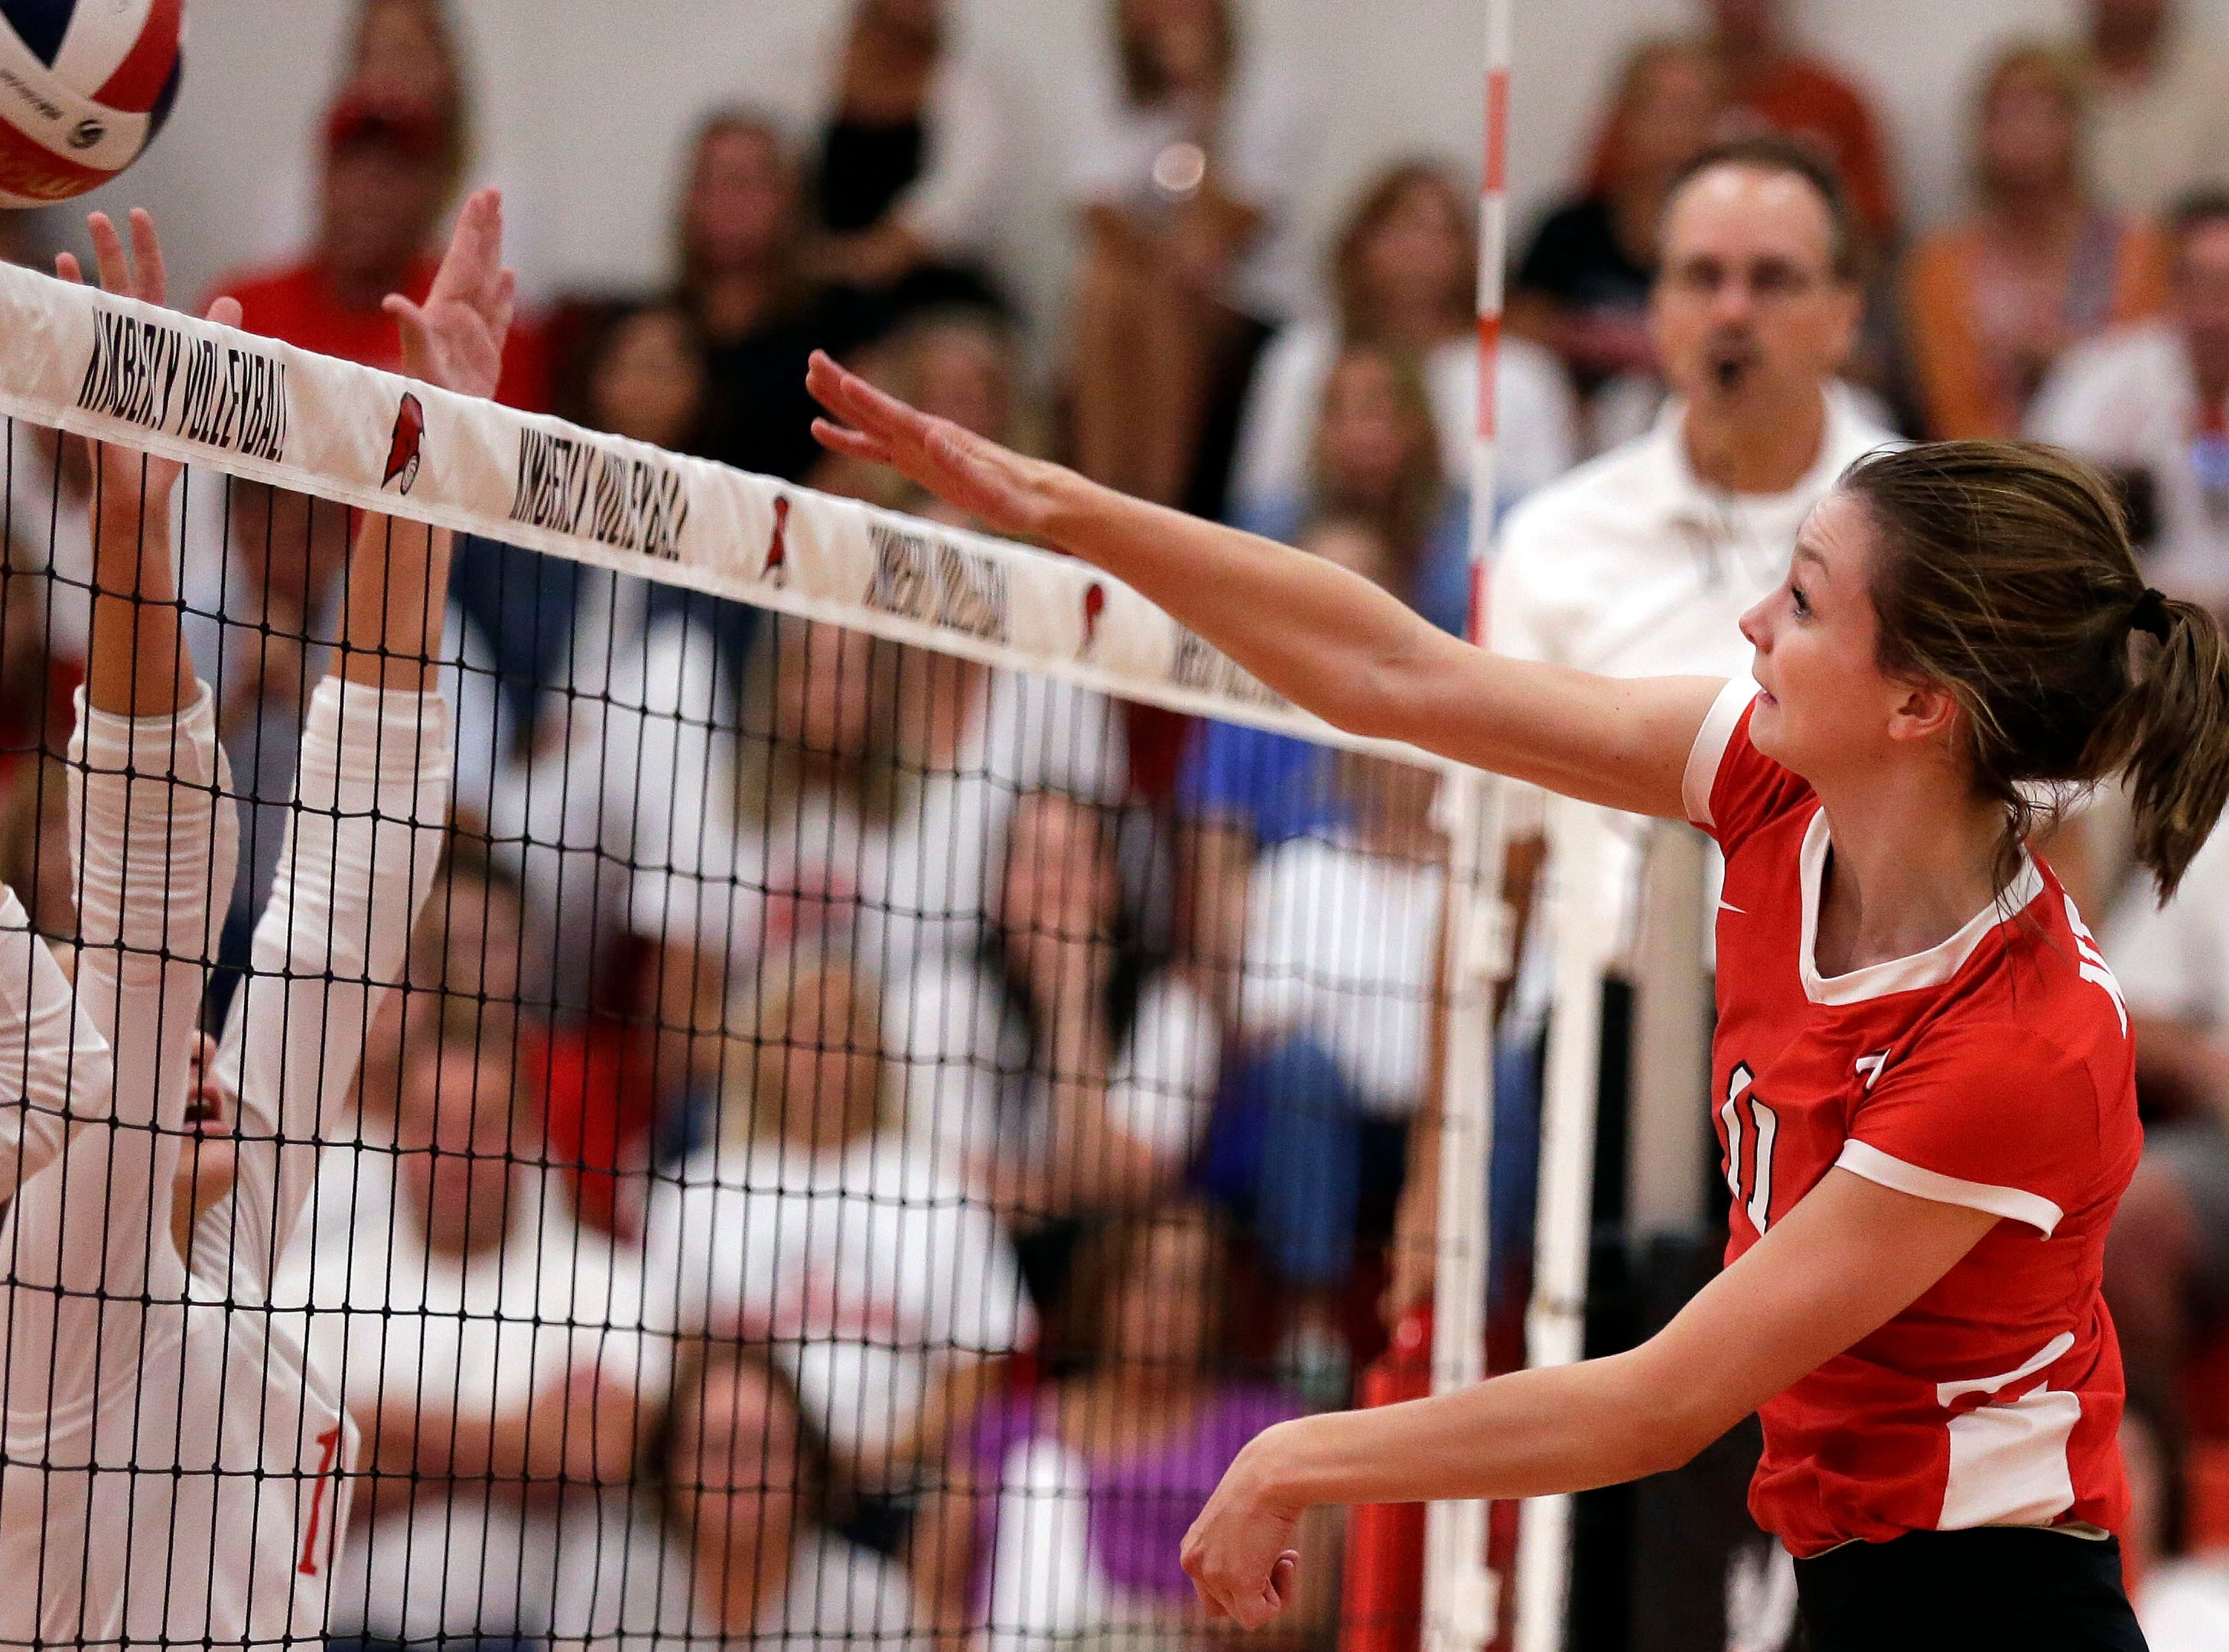 Reagan Obry of Neenah hits against Kimberly in FVA girls volleyball Tuesday, September 11, 2018, at Kimberly High School in Kimberly, Wis.Ron Page/USA TODAY NETWORK-Wisconsin